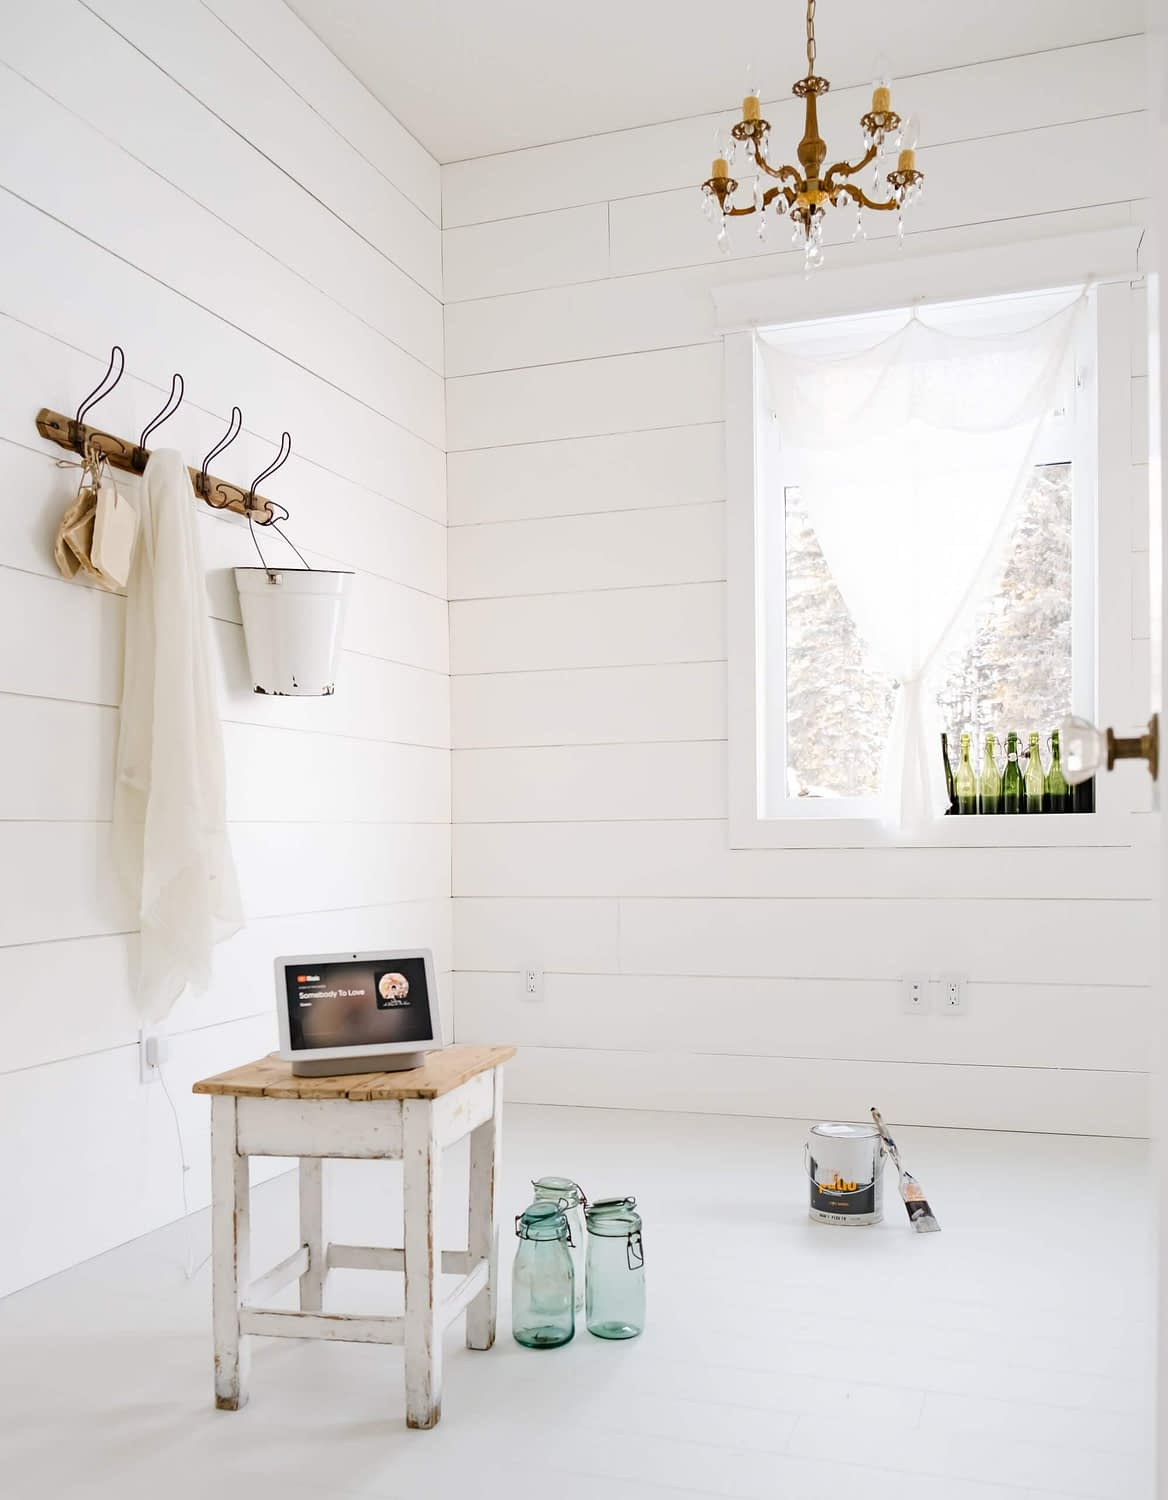 Painted floors and shiplap